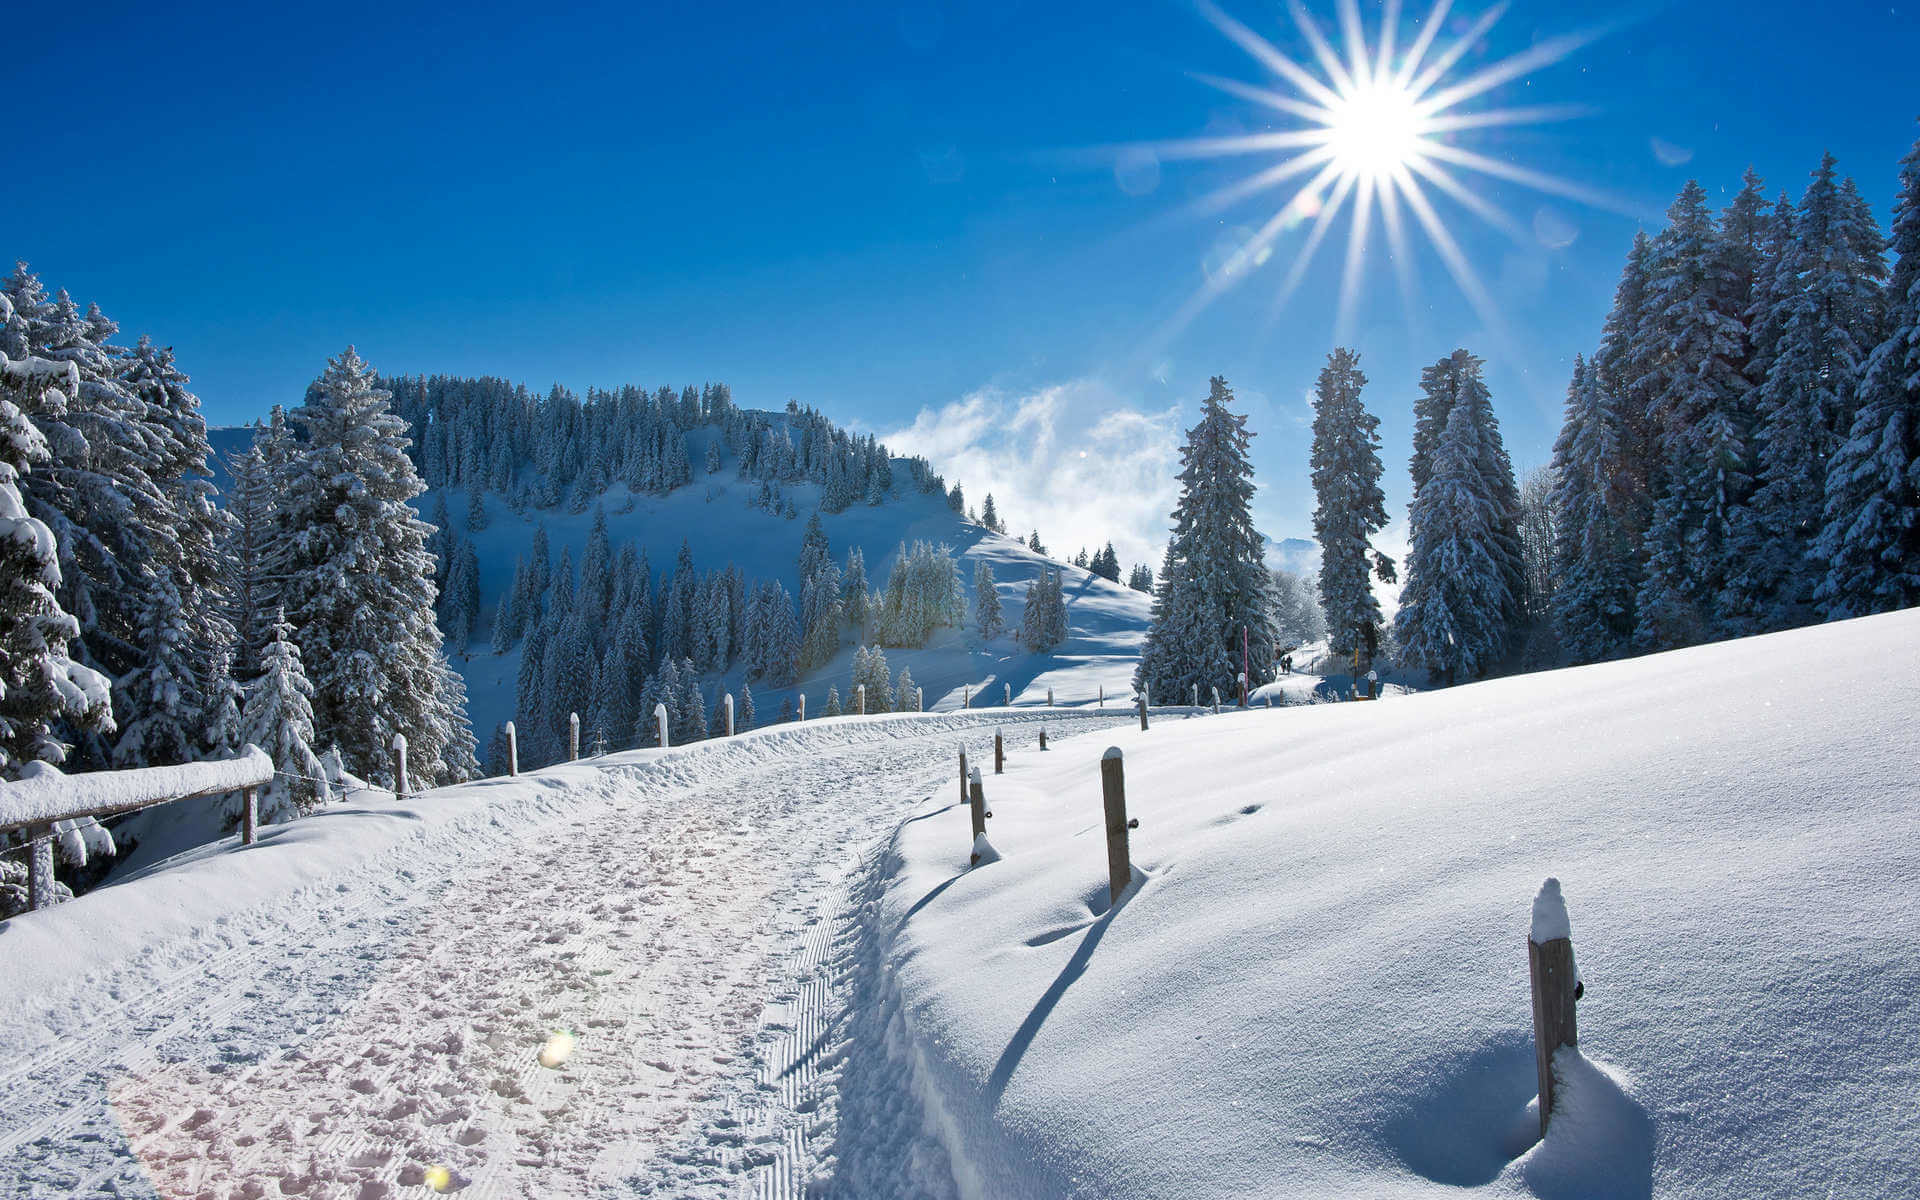 1920x1200  Winter Wonderland Wallpaper.  0.558 MB. Winter Wonderland  Photo